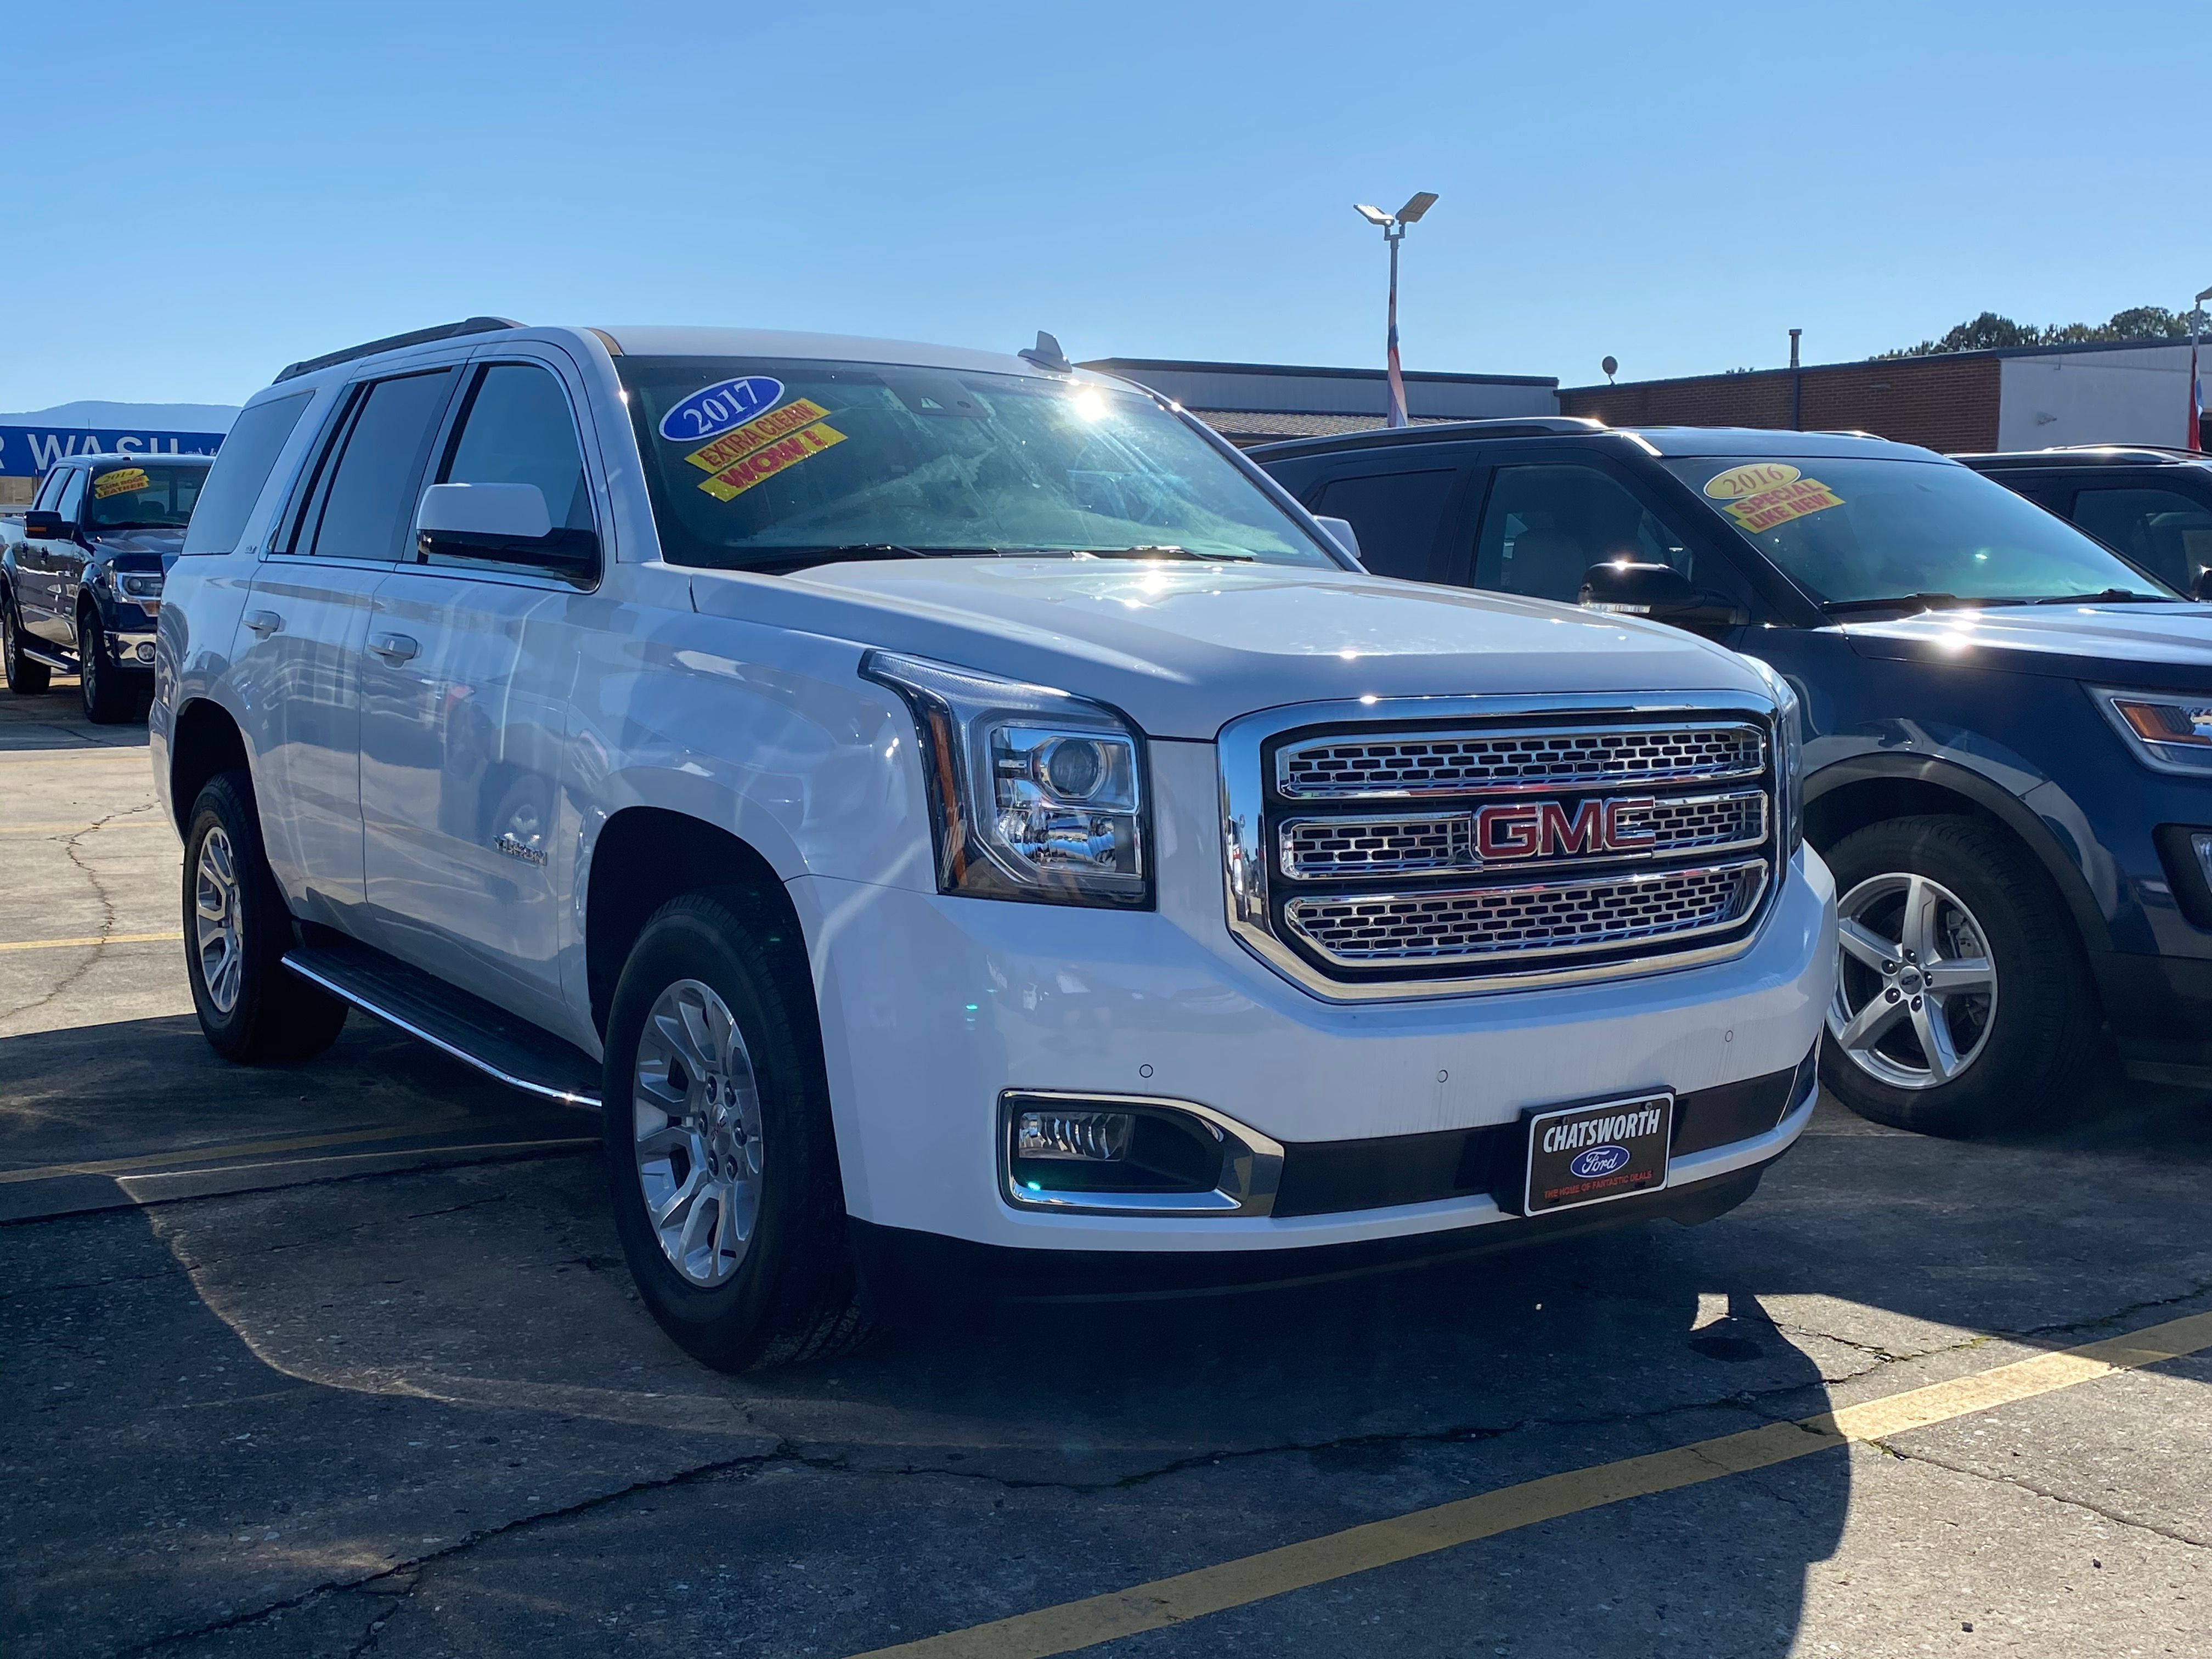 super clean luxury local trade and recent price reduction move your people in style in this 2017 gmc yukon under 70k miles and on in 2020 chatsworth ford gmc yukon pinterest